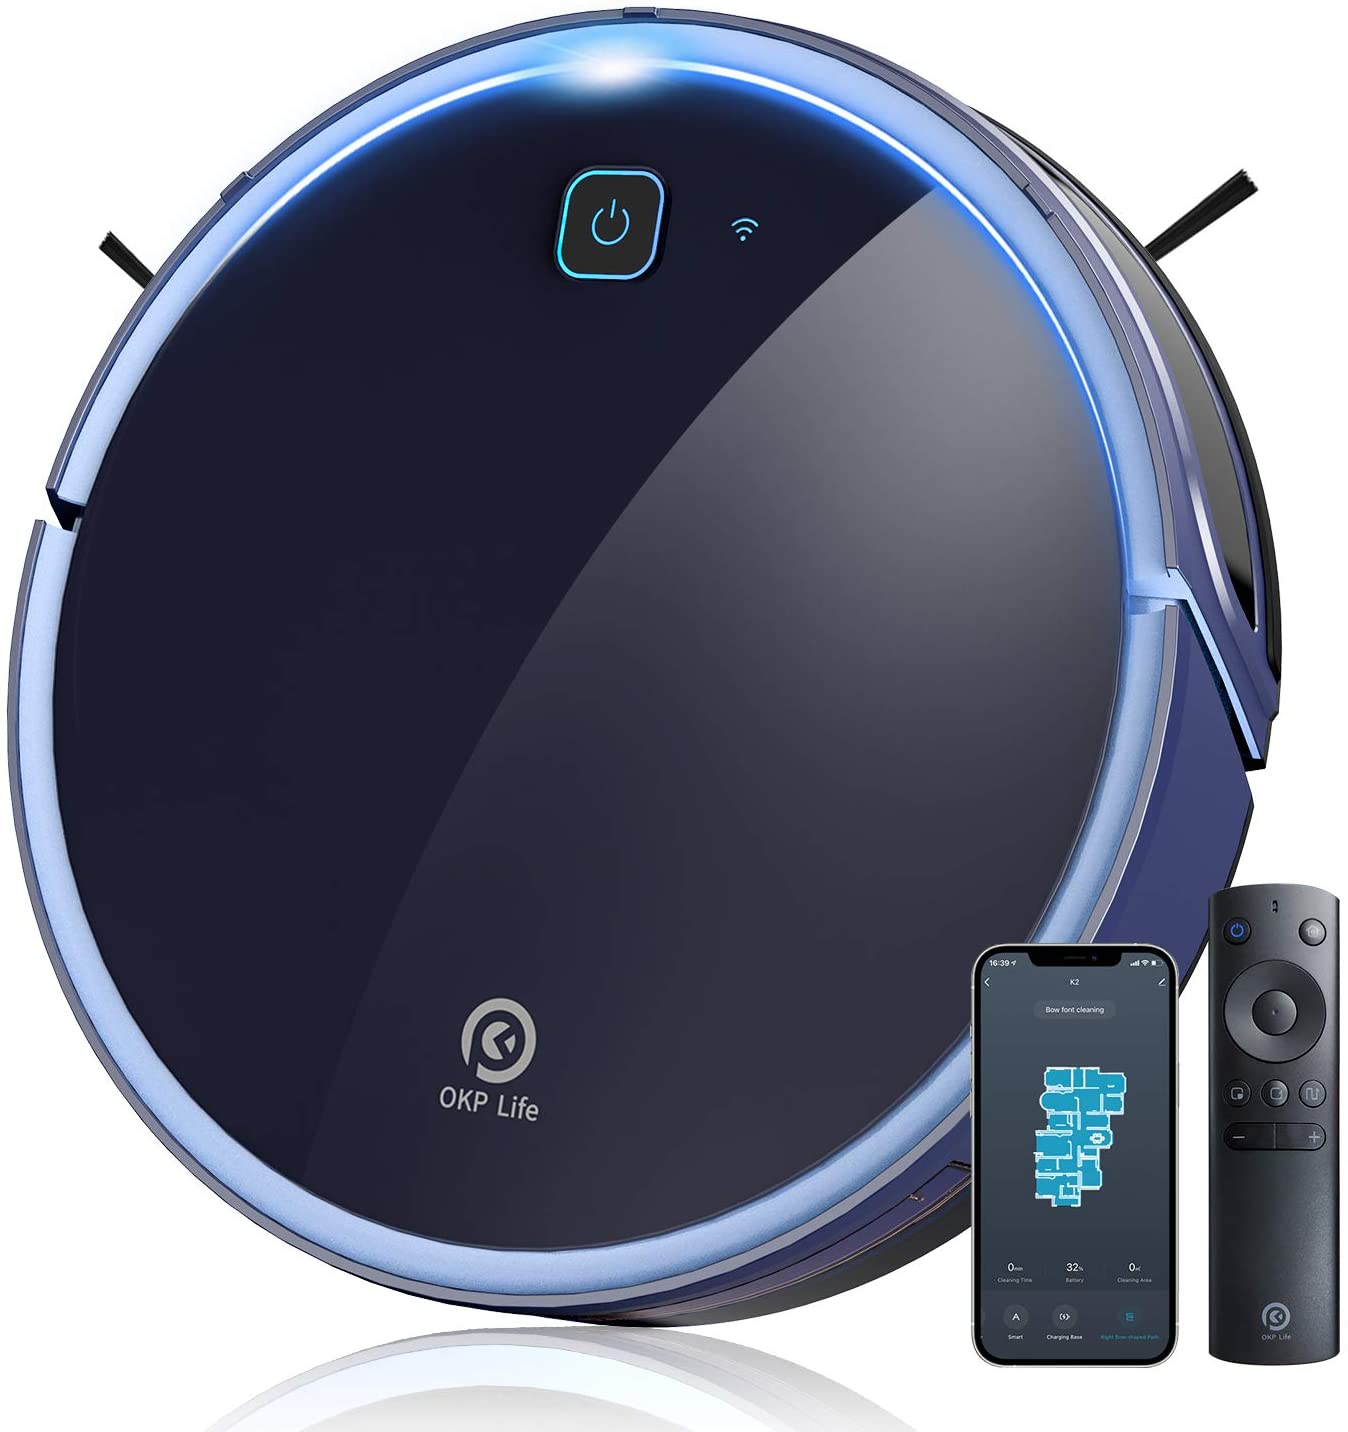 Robot Vacuum Cleaner for $121.99 Shipped! (Reg.Price $299.99)